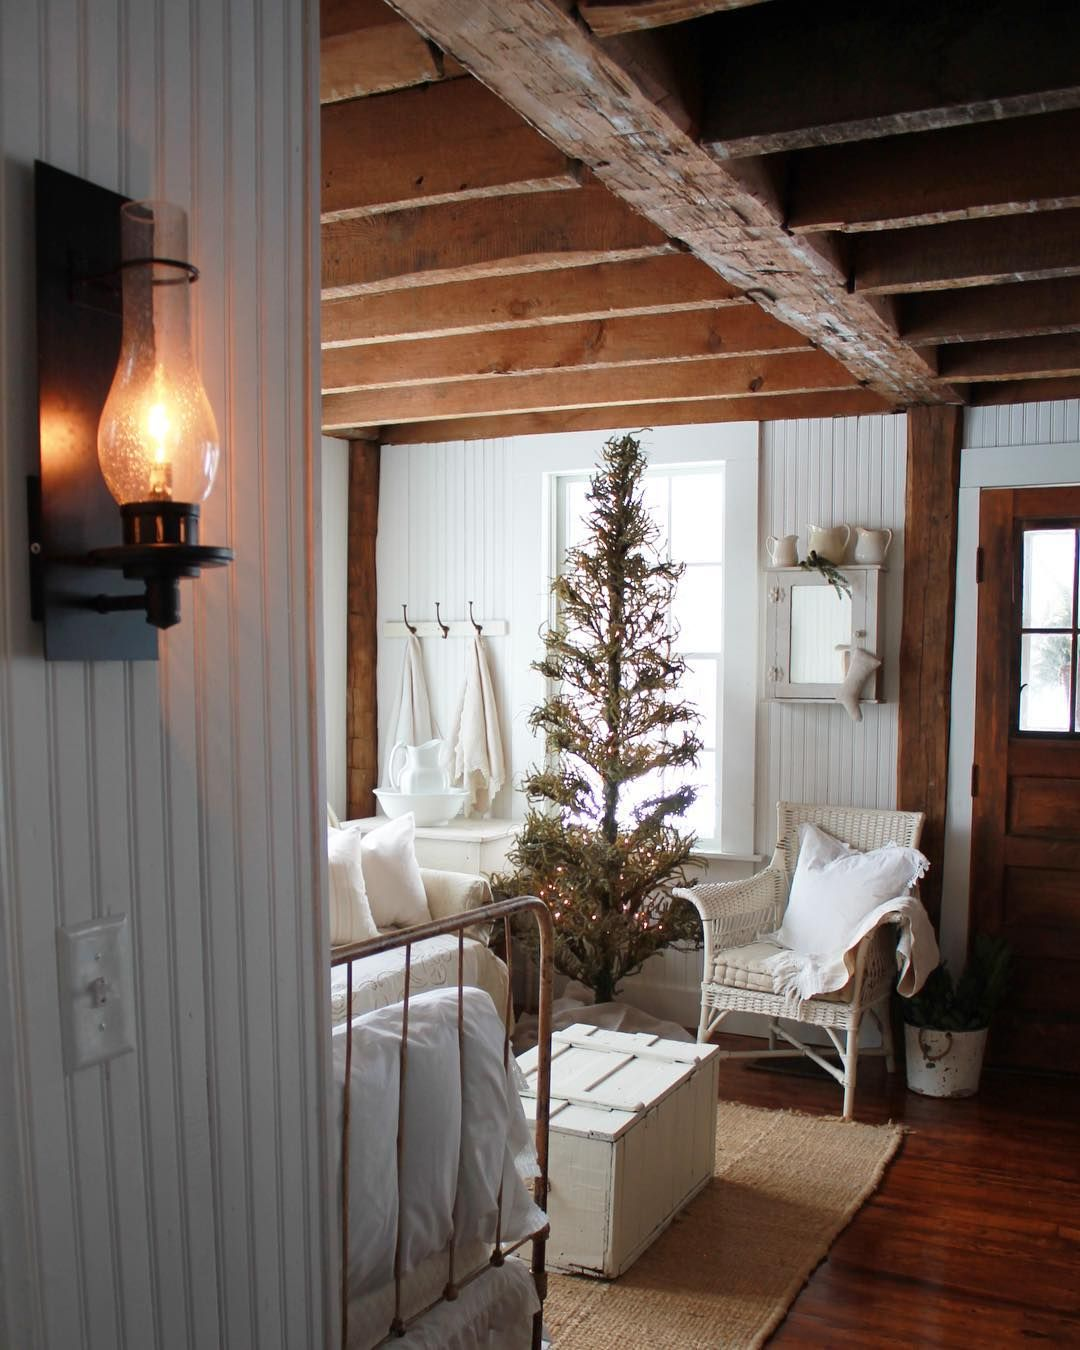 Farmhouse5540 Farmhousechristmas Simplefarmhousestyle